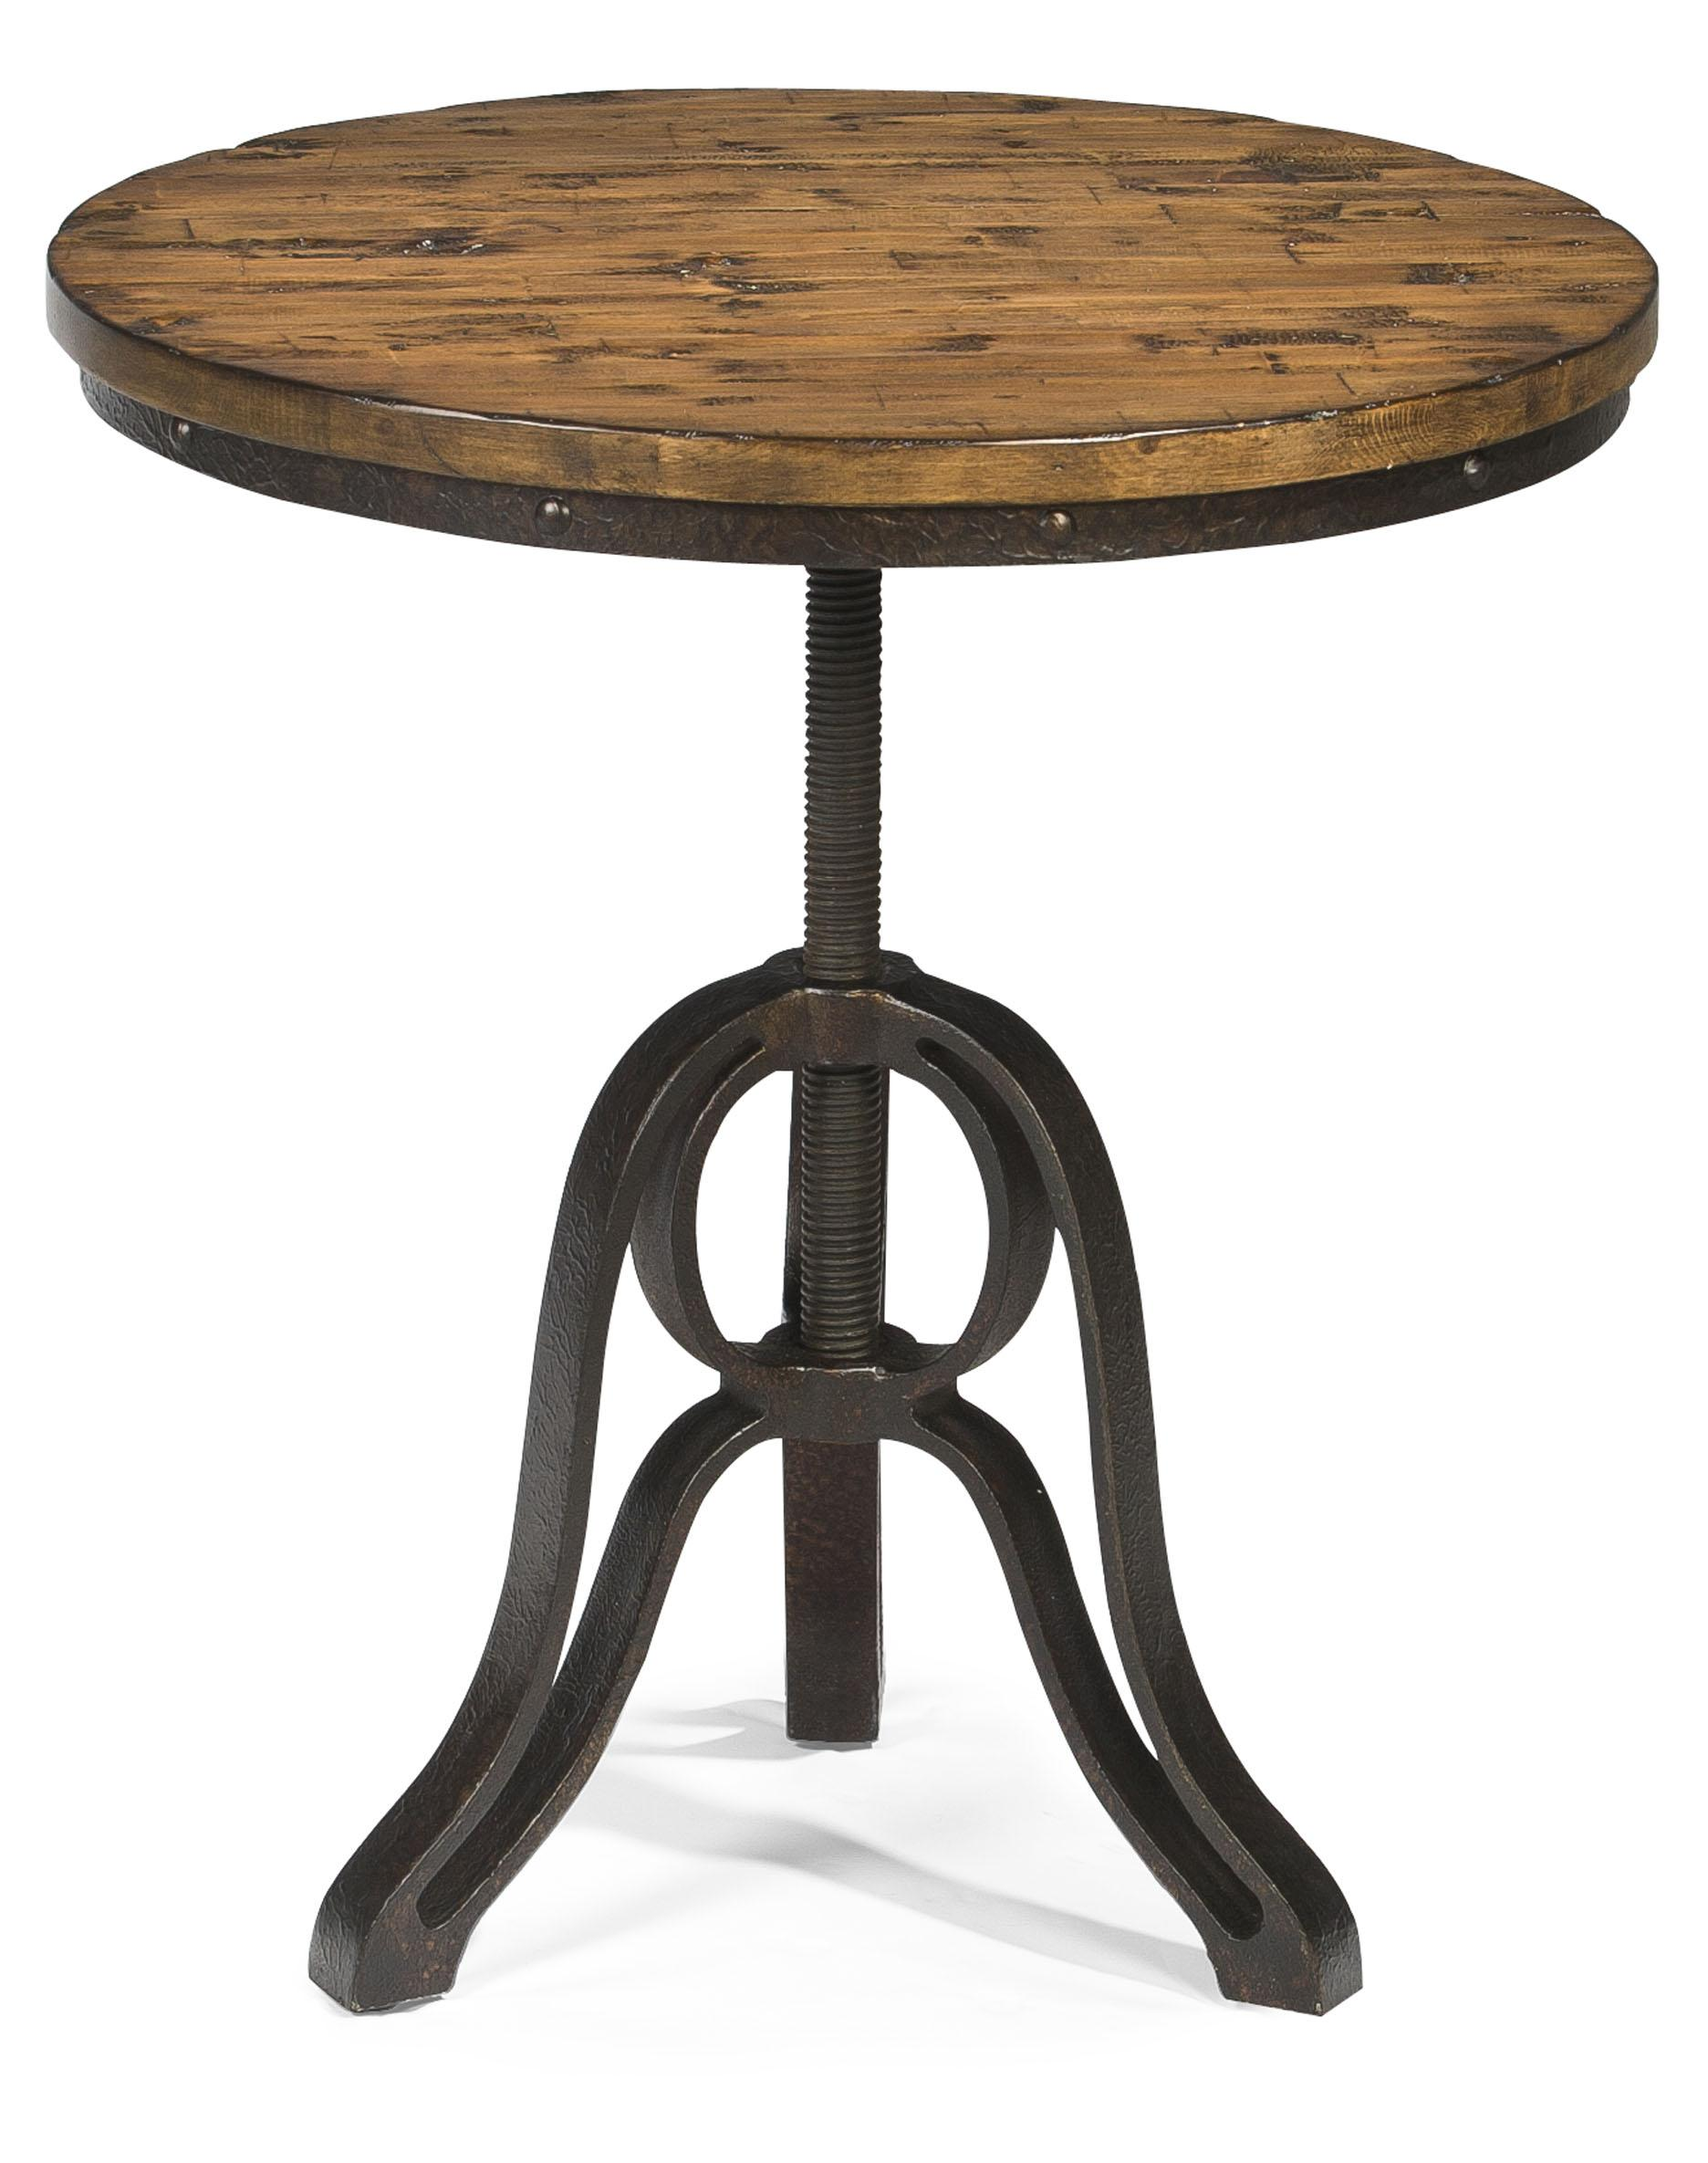 table oak bedside large round wood accent unfinished small end distressed tables pedestal black remarkable tall diy side full size square patio umbrella homemade coffee plans